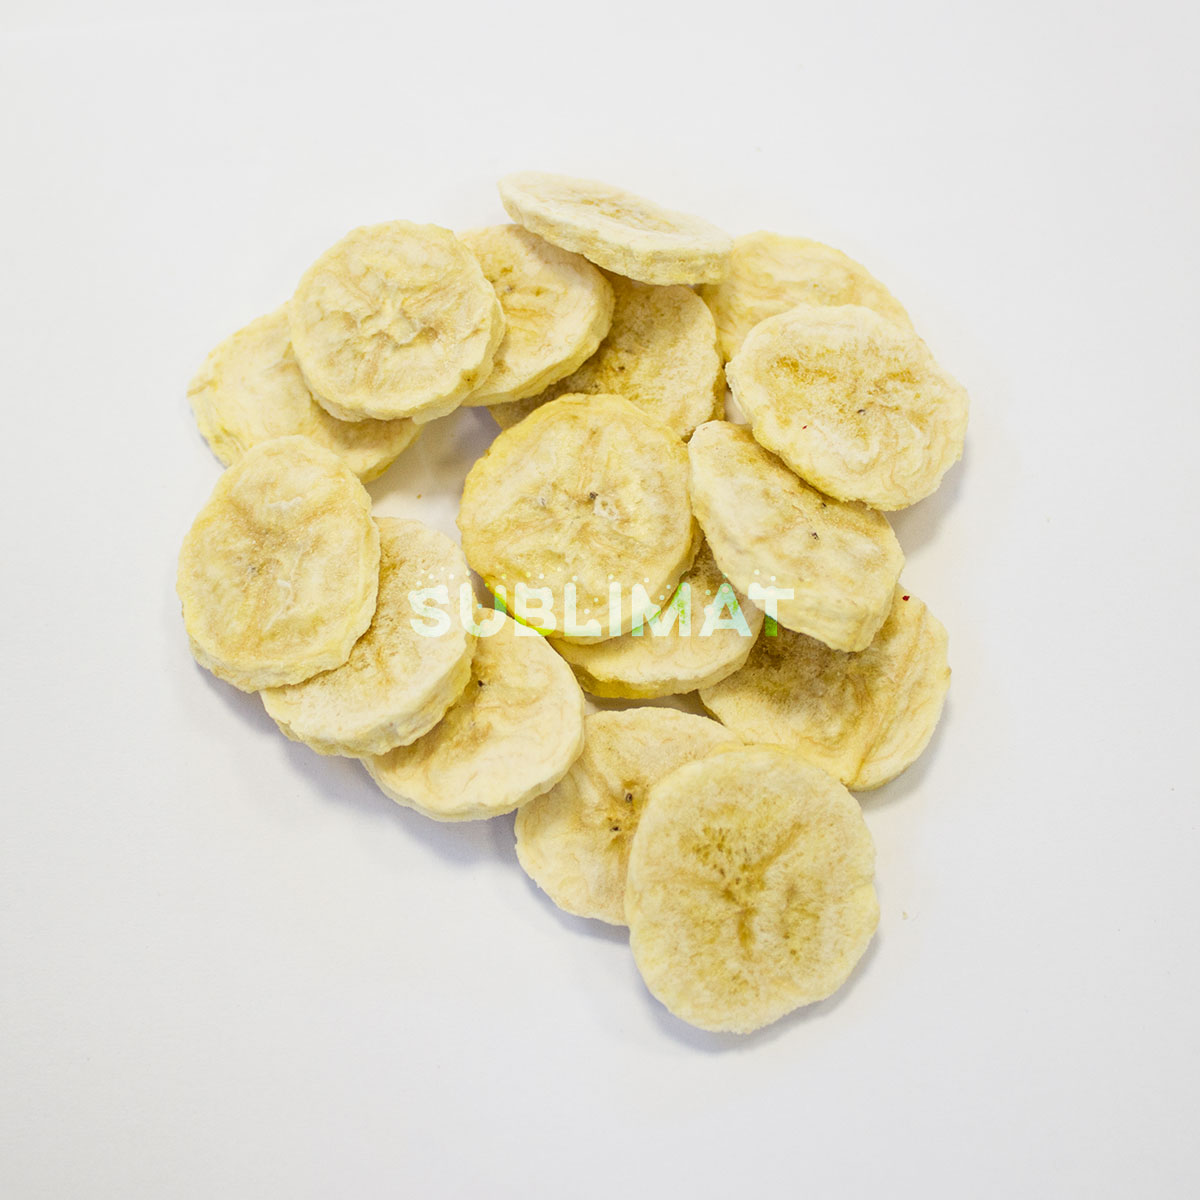 Freeze-dried banana